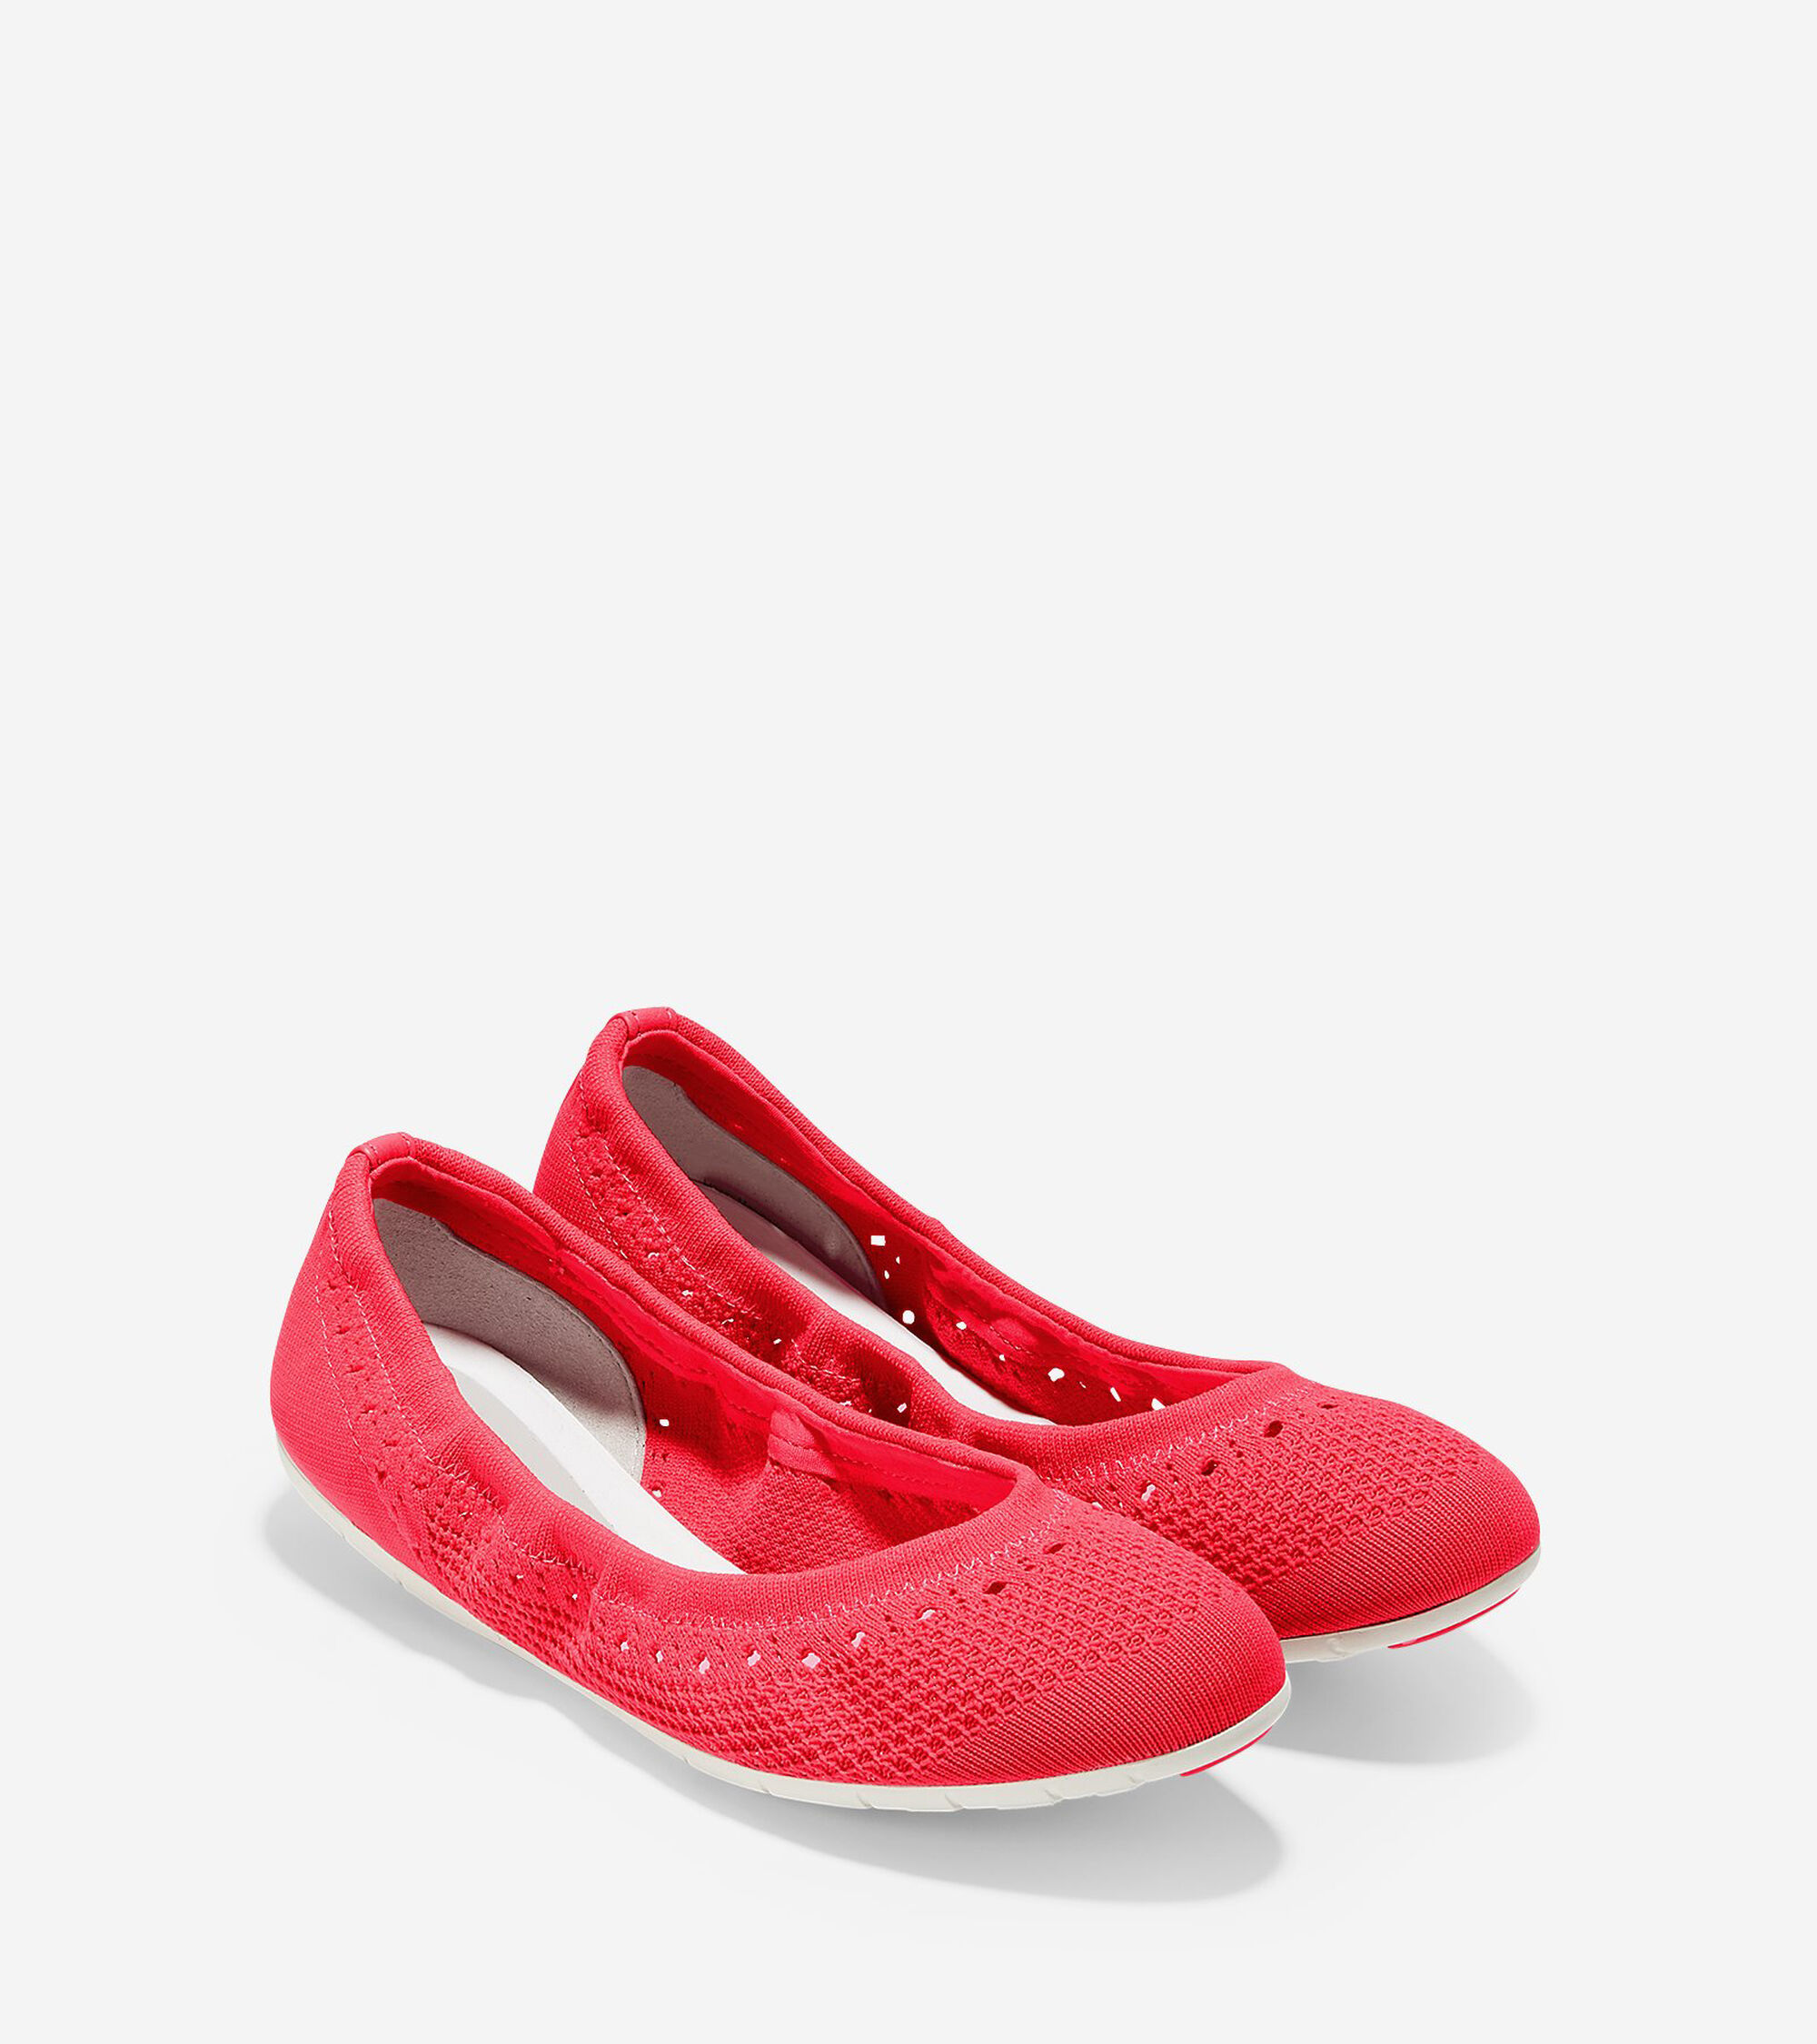 Womens Zerogrand Knit Ballet Flats In Flash Ivory Cole Haan  Olivia Sneakers Zergrand Flat With Stitchlite